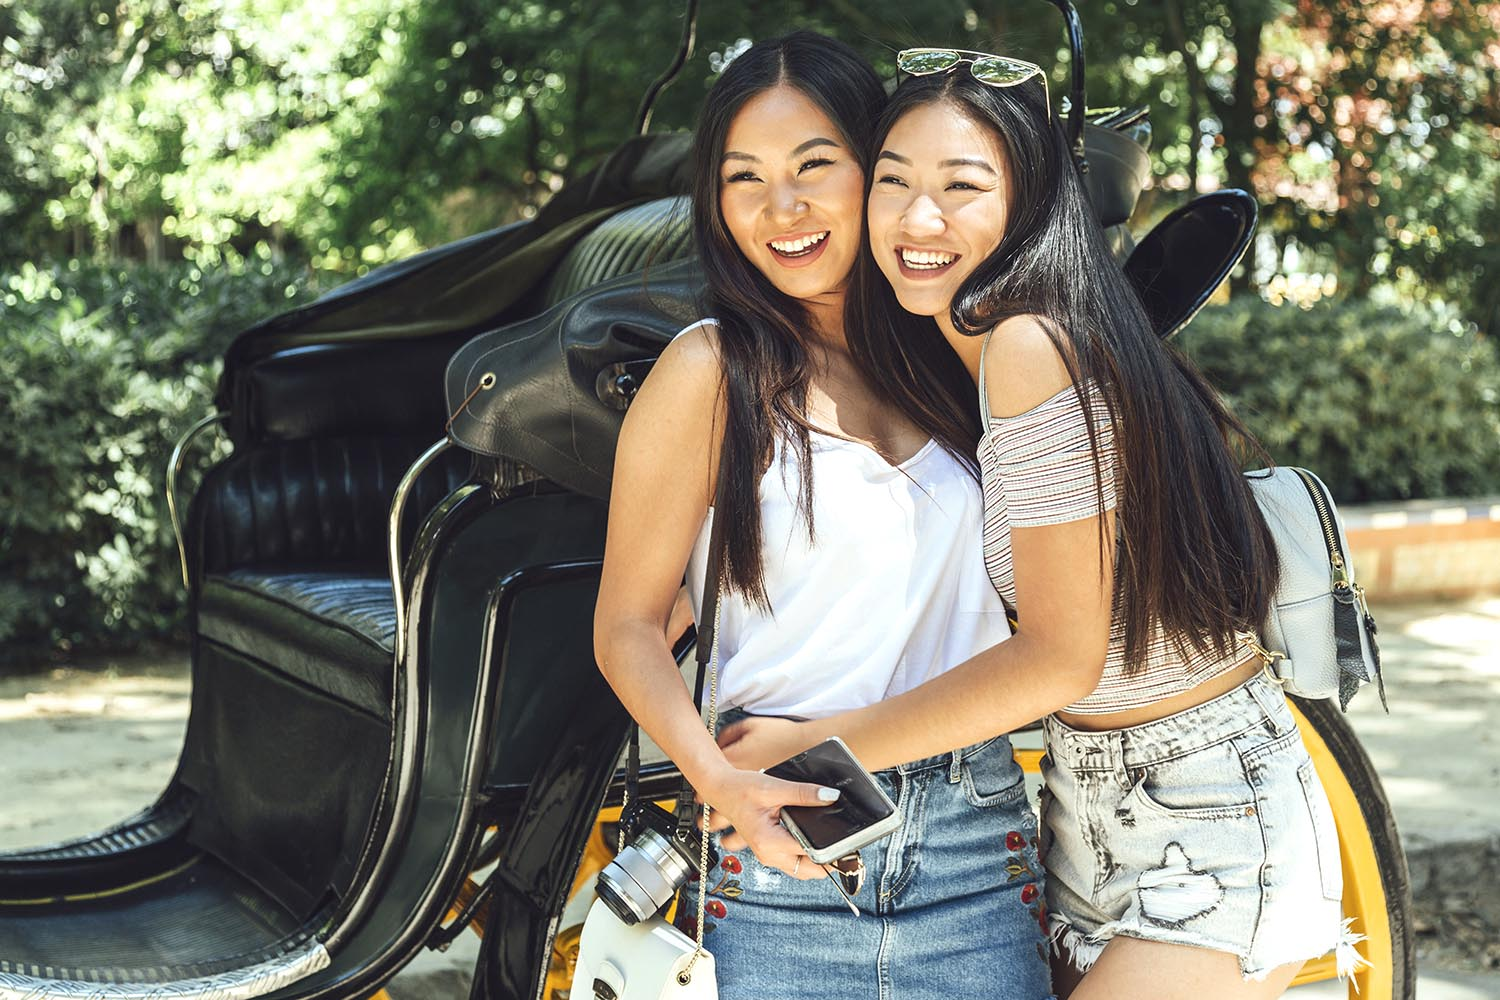 Two Chinese girls standing against carriage